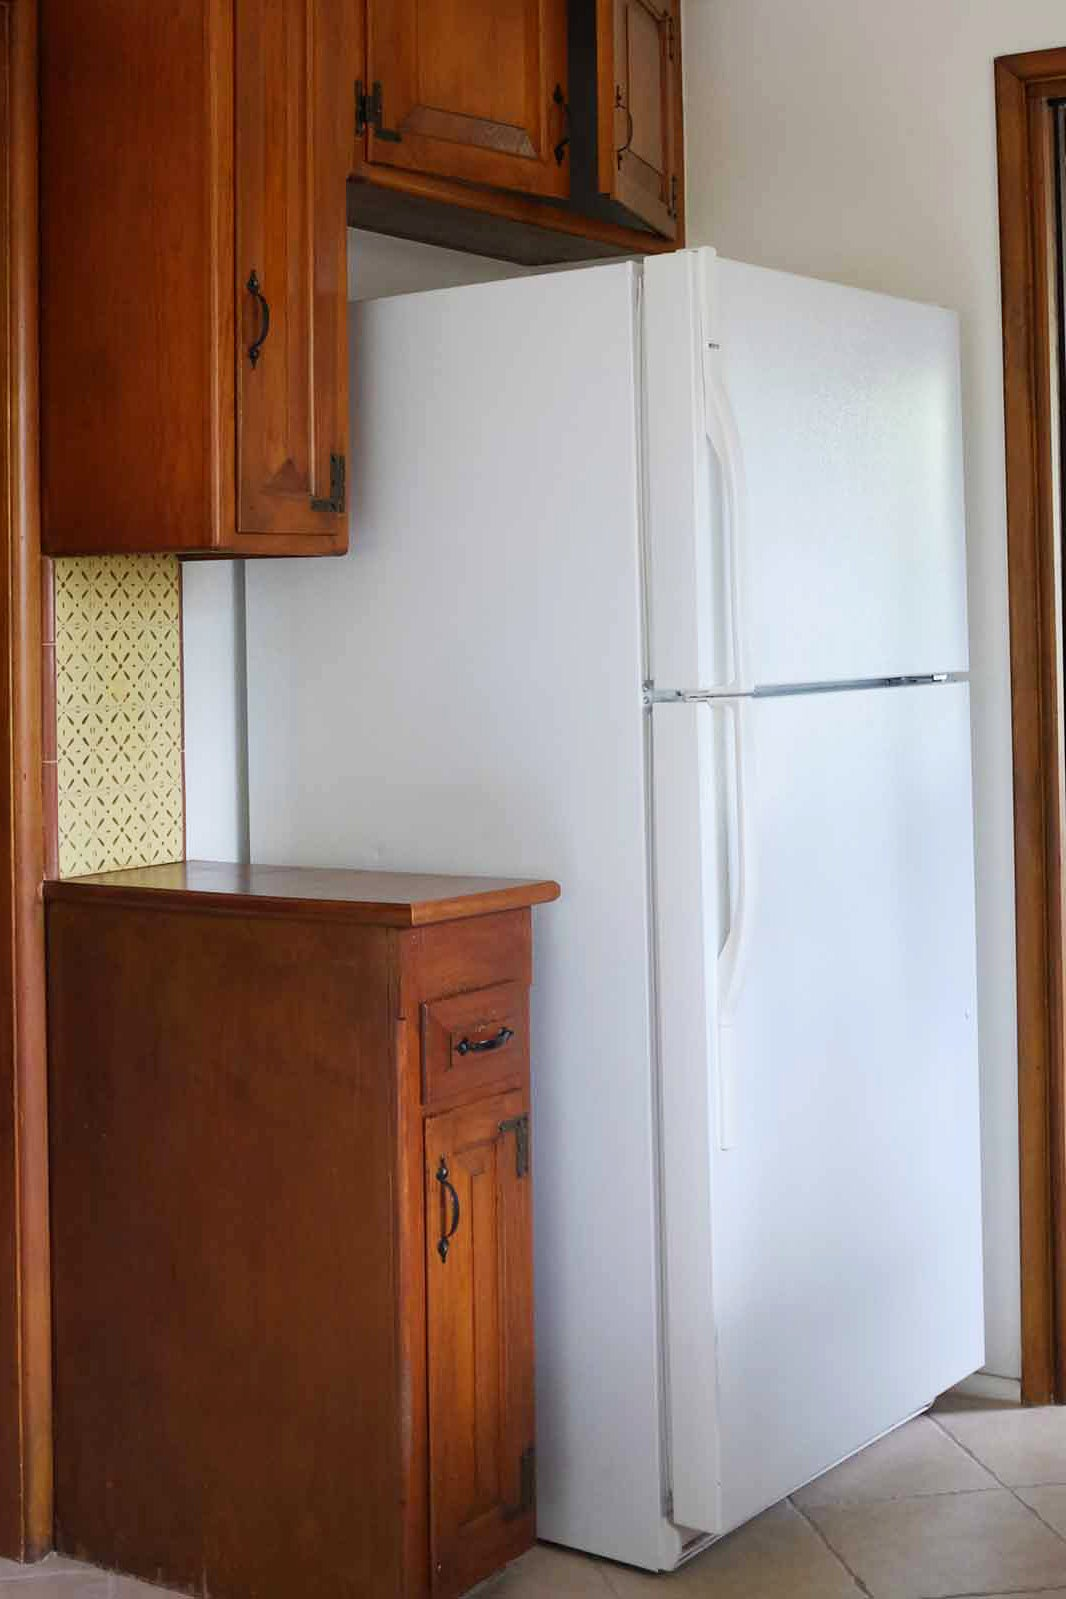 white fridge with dated wood cabinets